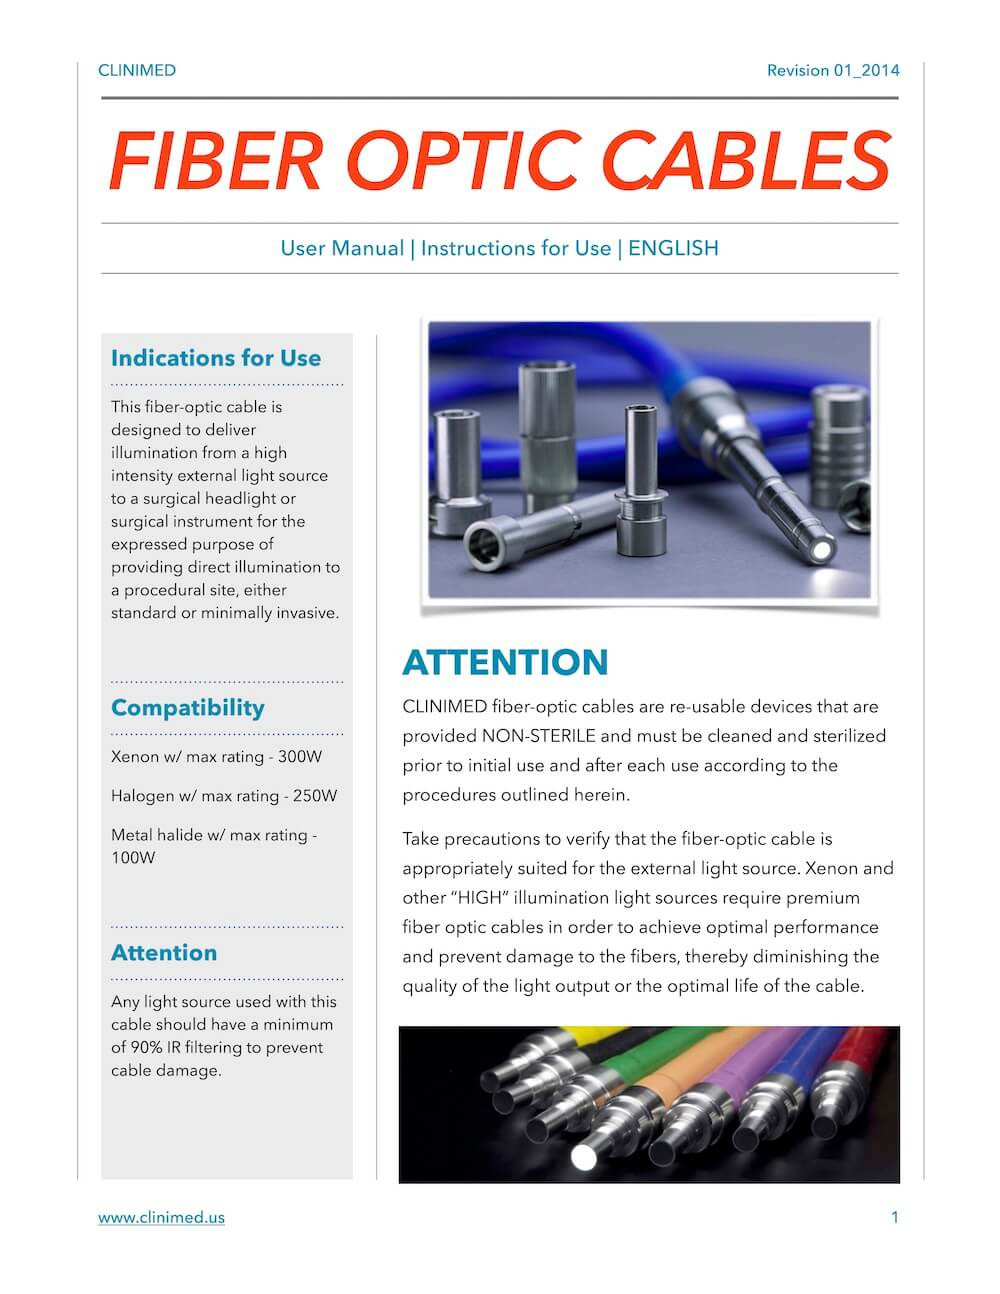 CLINIMED-Fiber-optic-cables-IFU